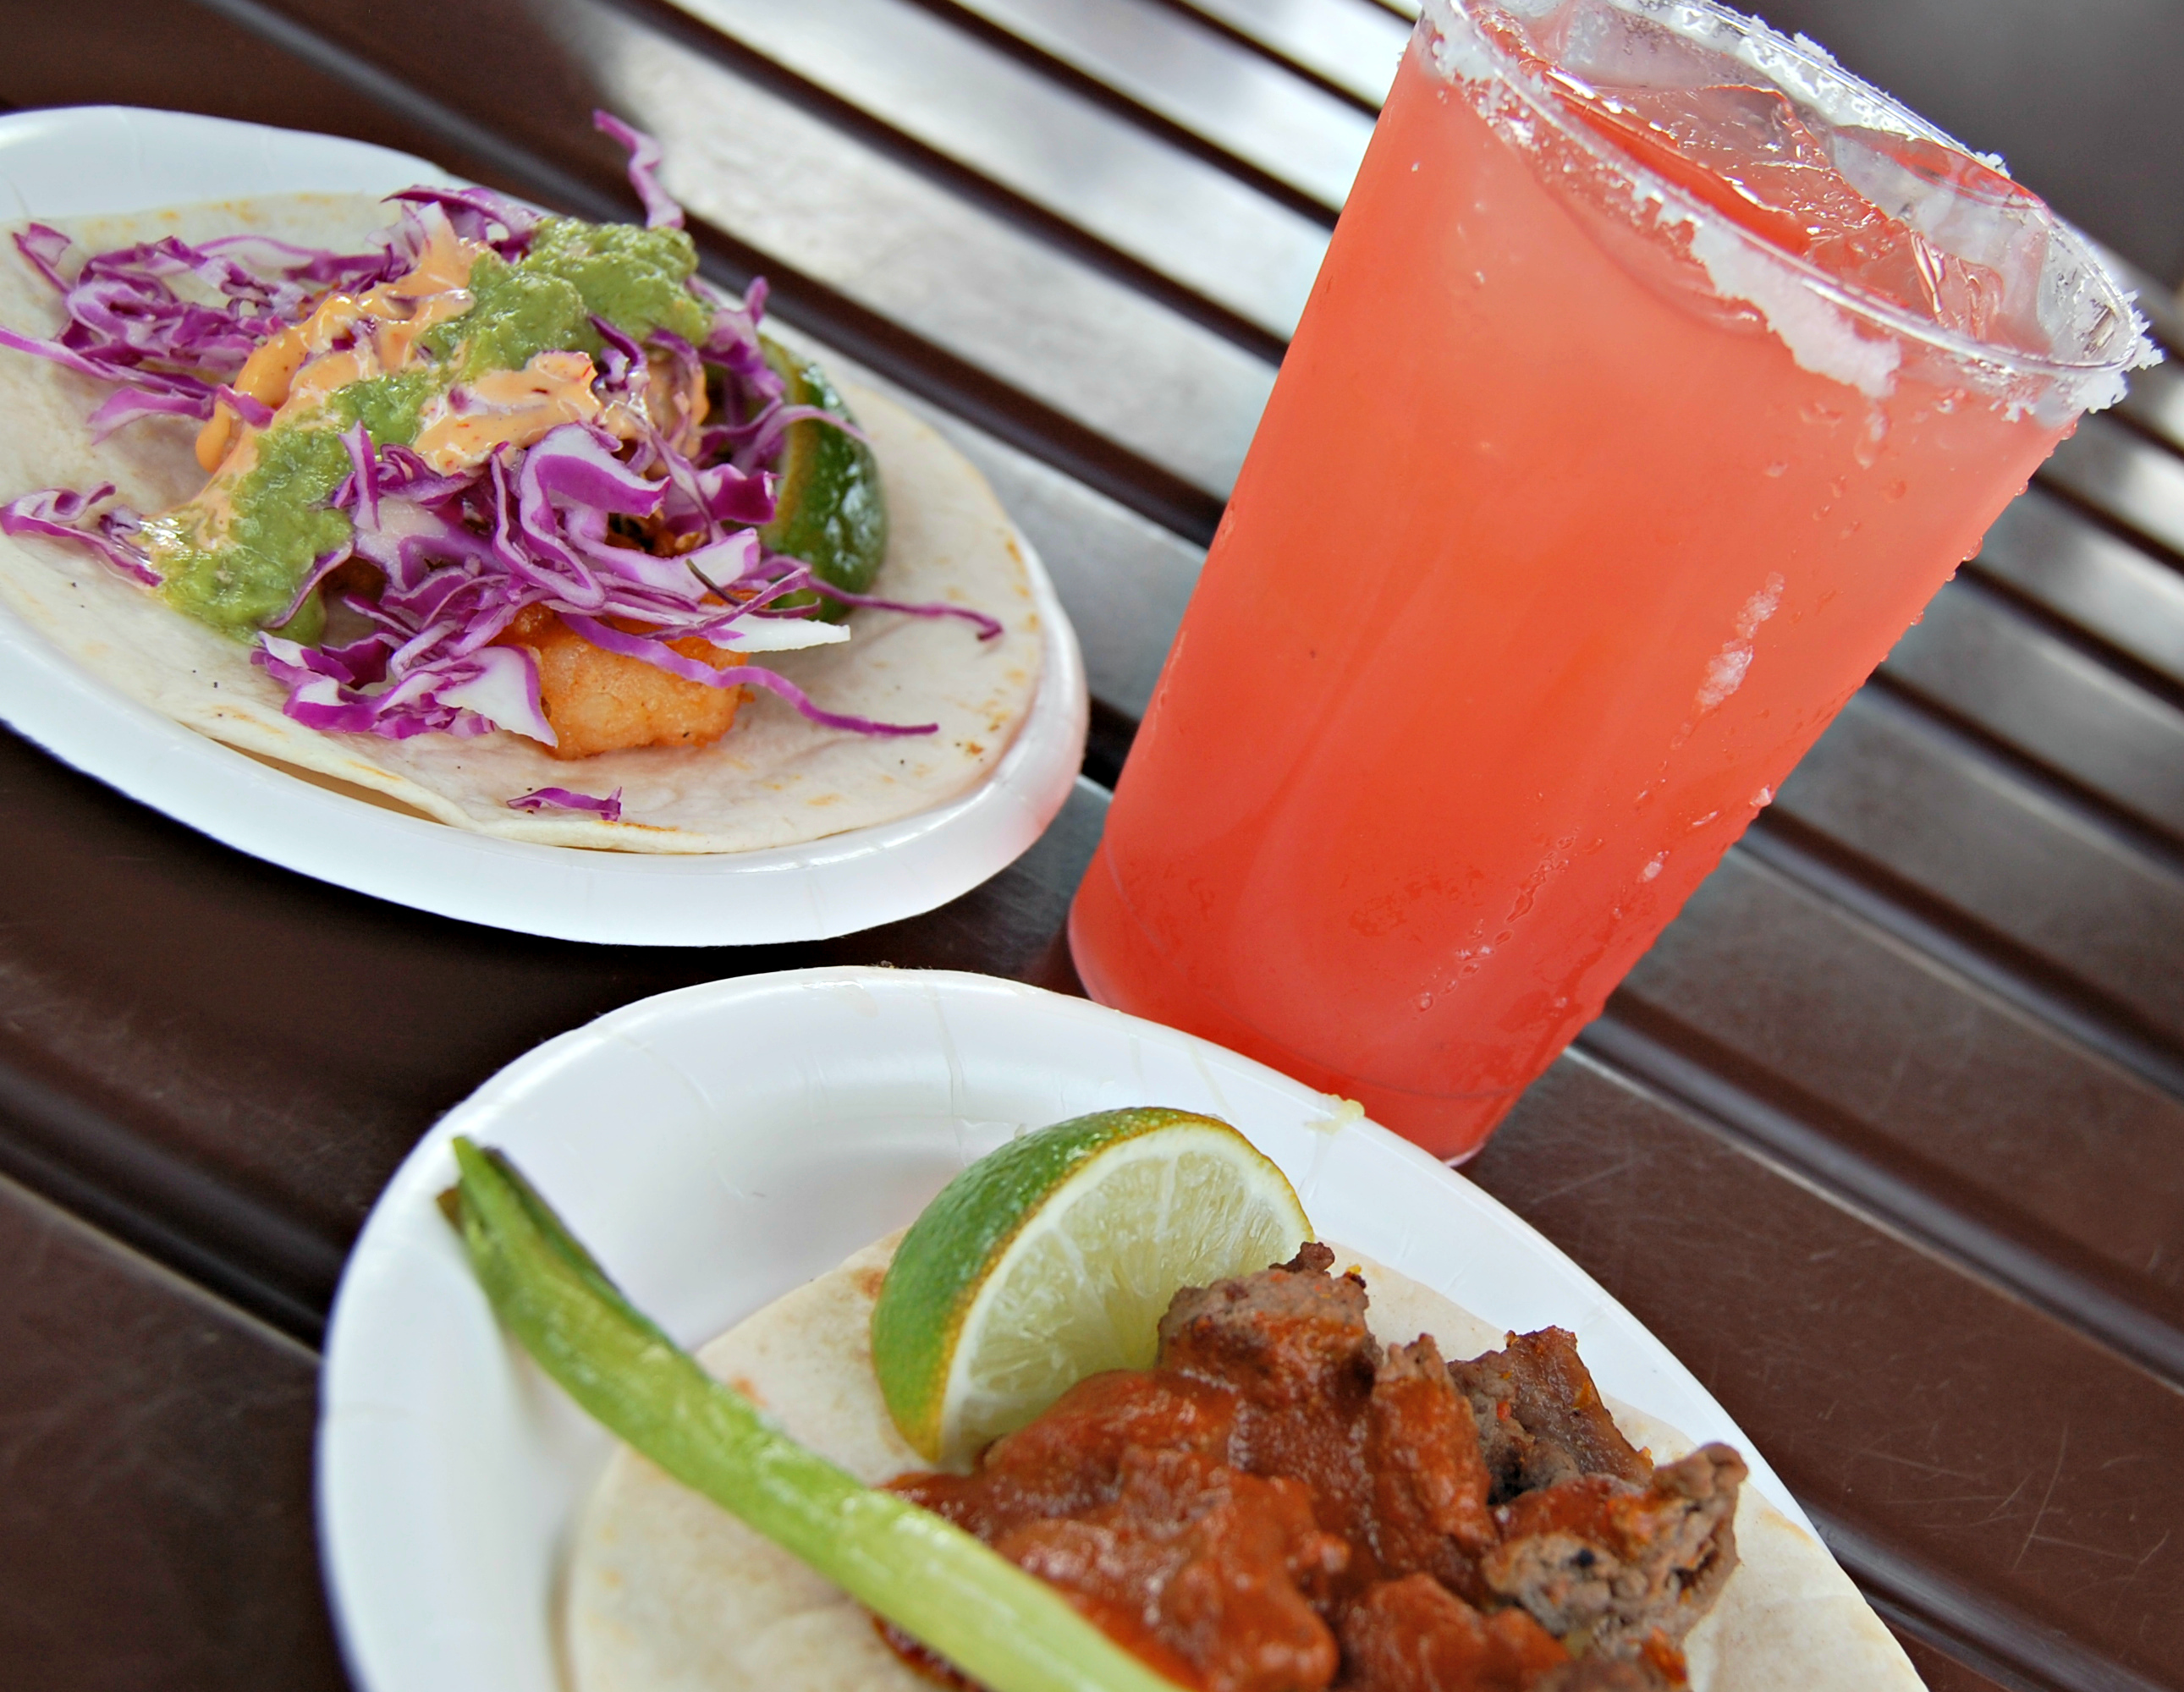 Tacos from Mexico, Epcot International Food & Wine Festival